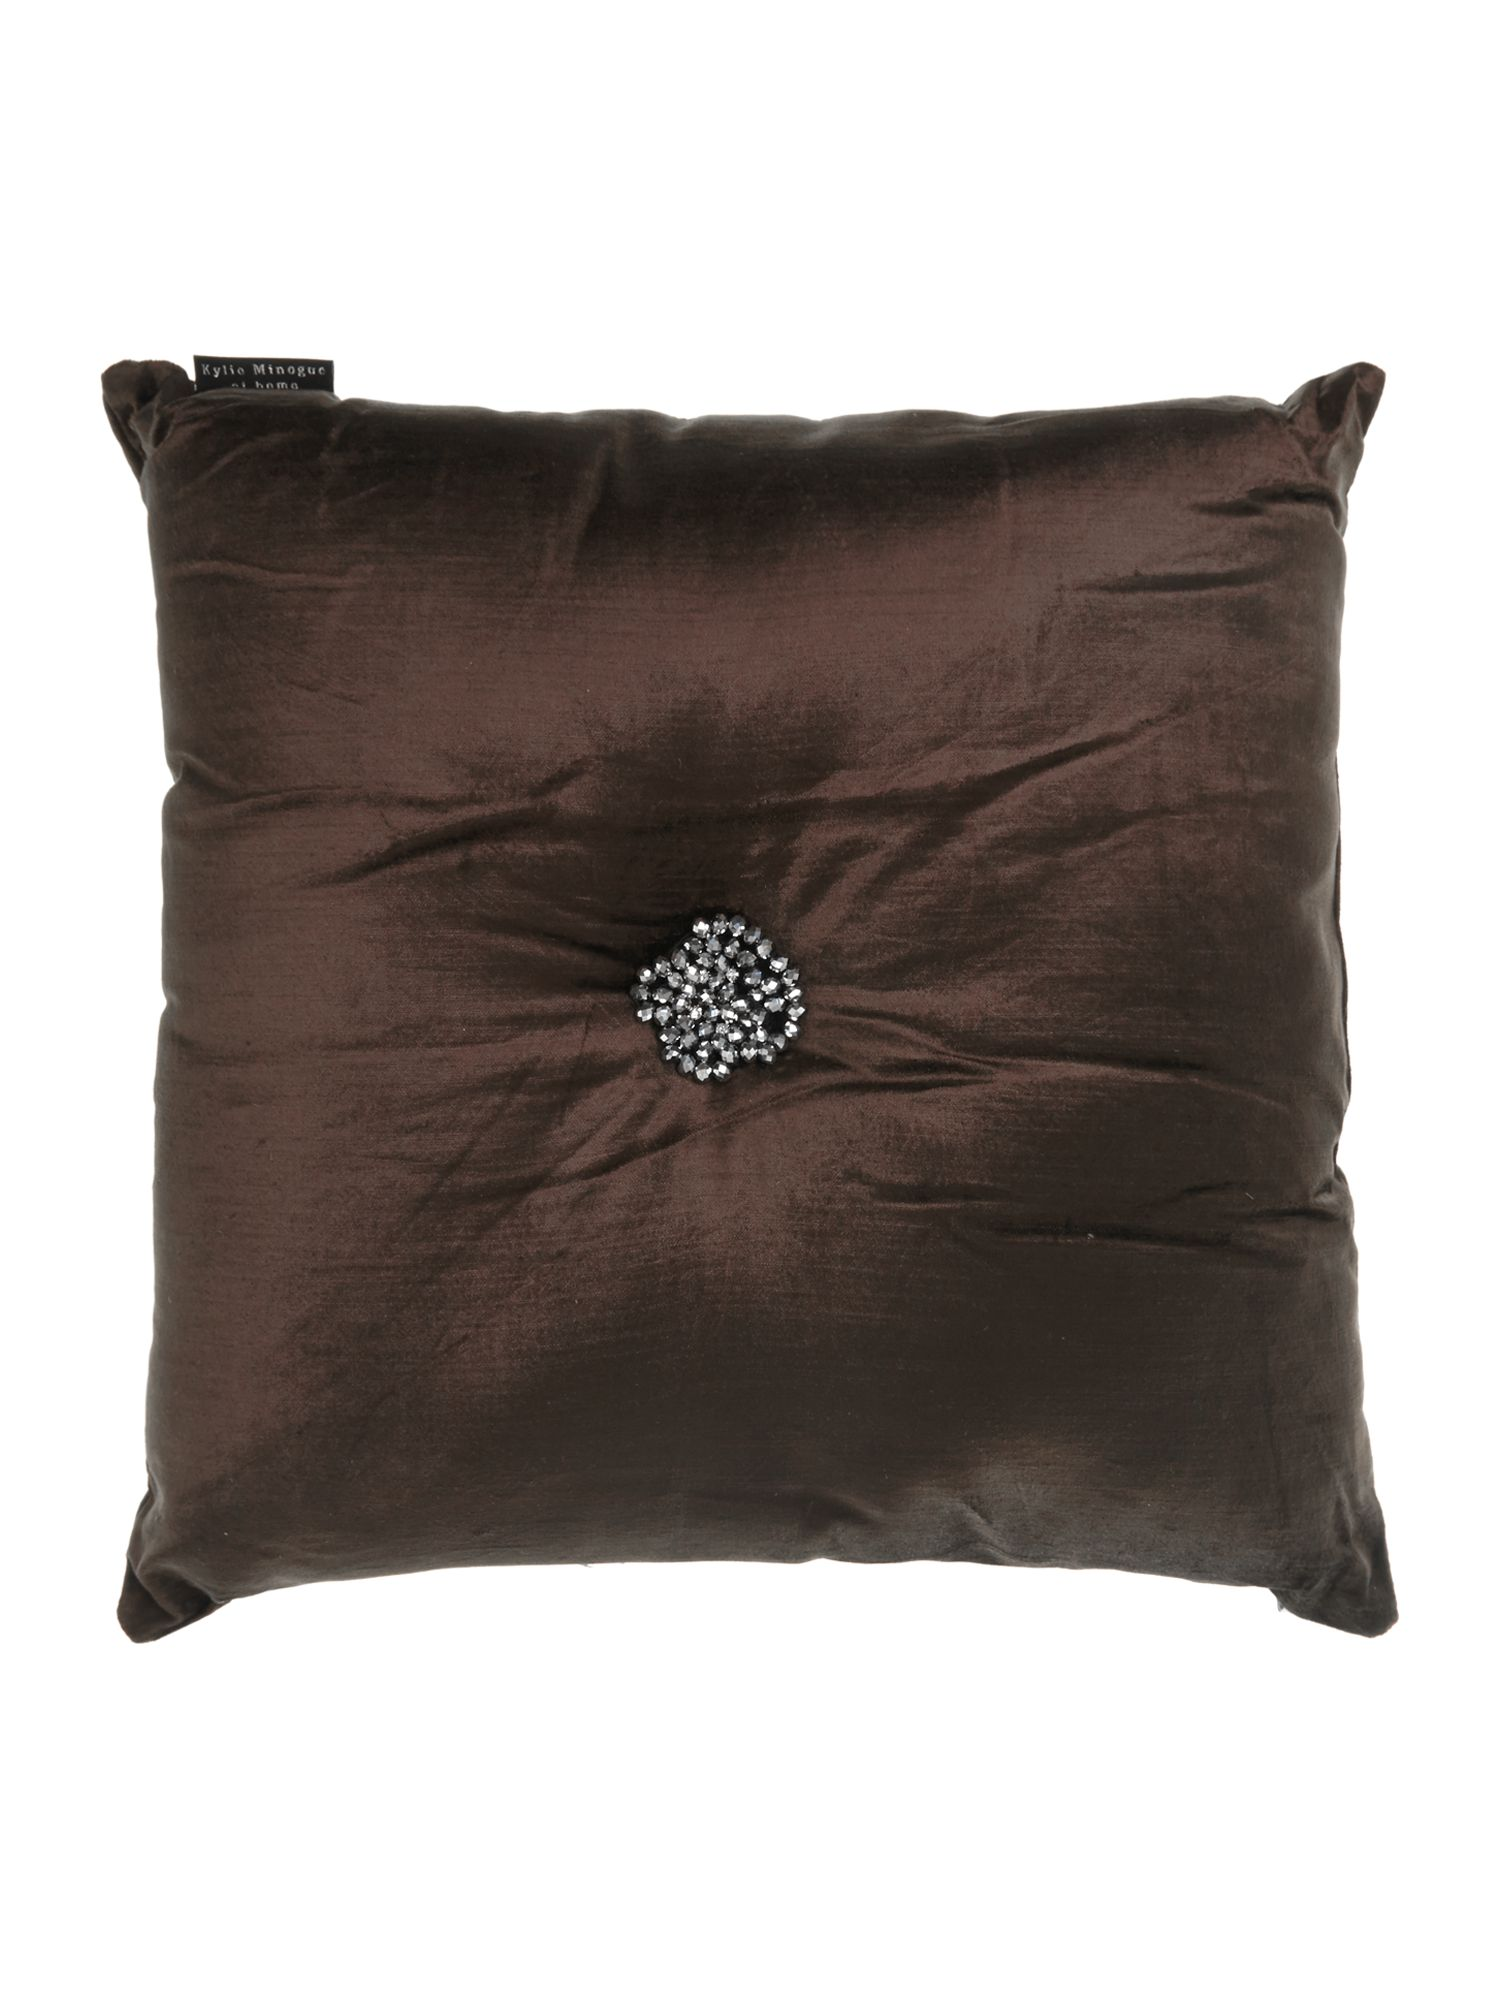 Cluster cocoa cushion 50x50